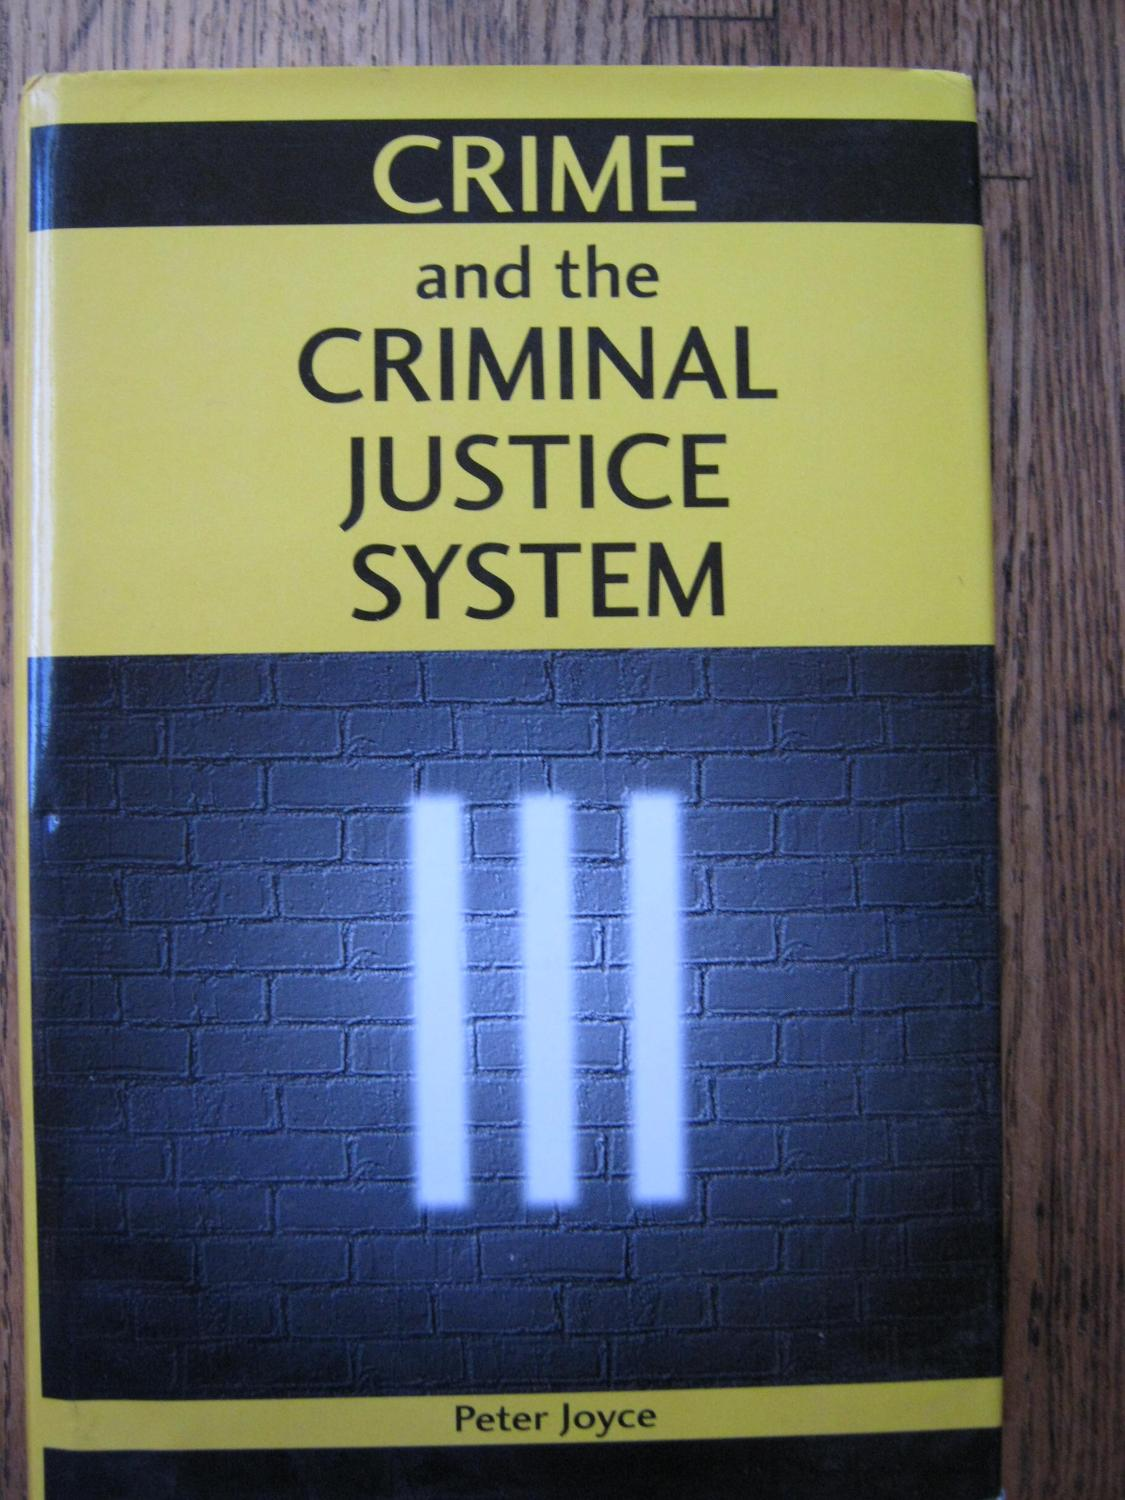 Crime and the Criminal Justice System